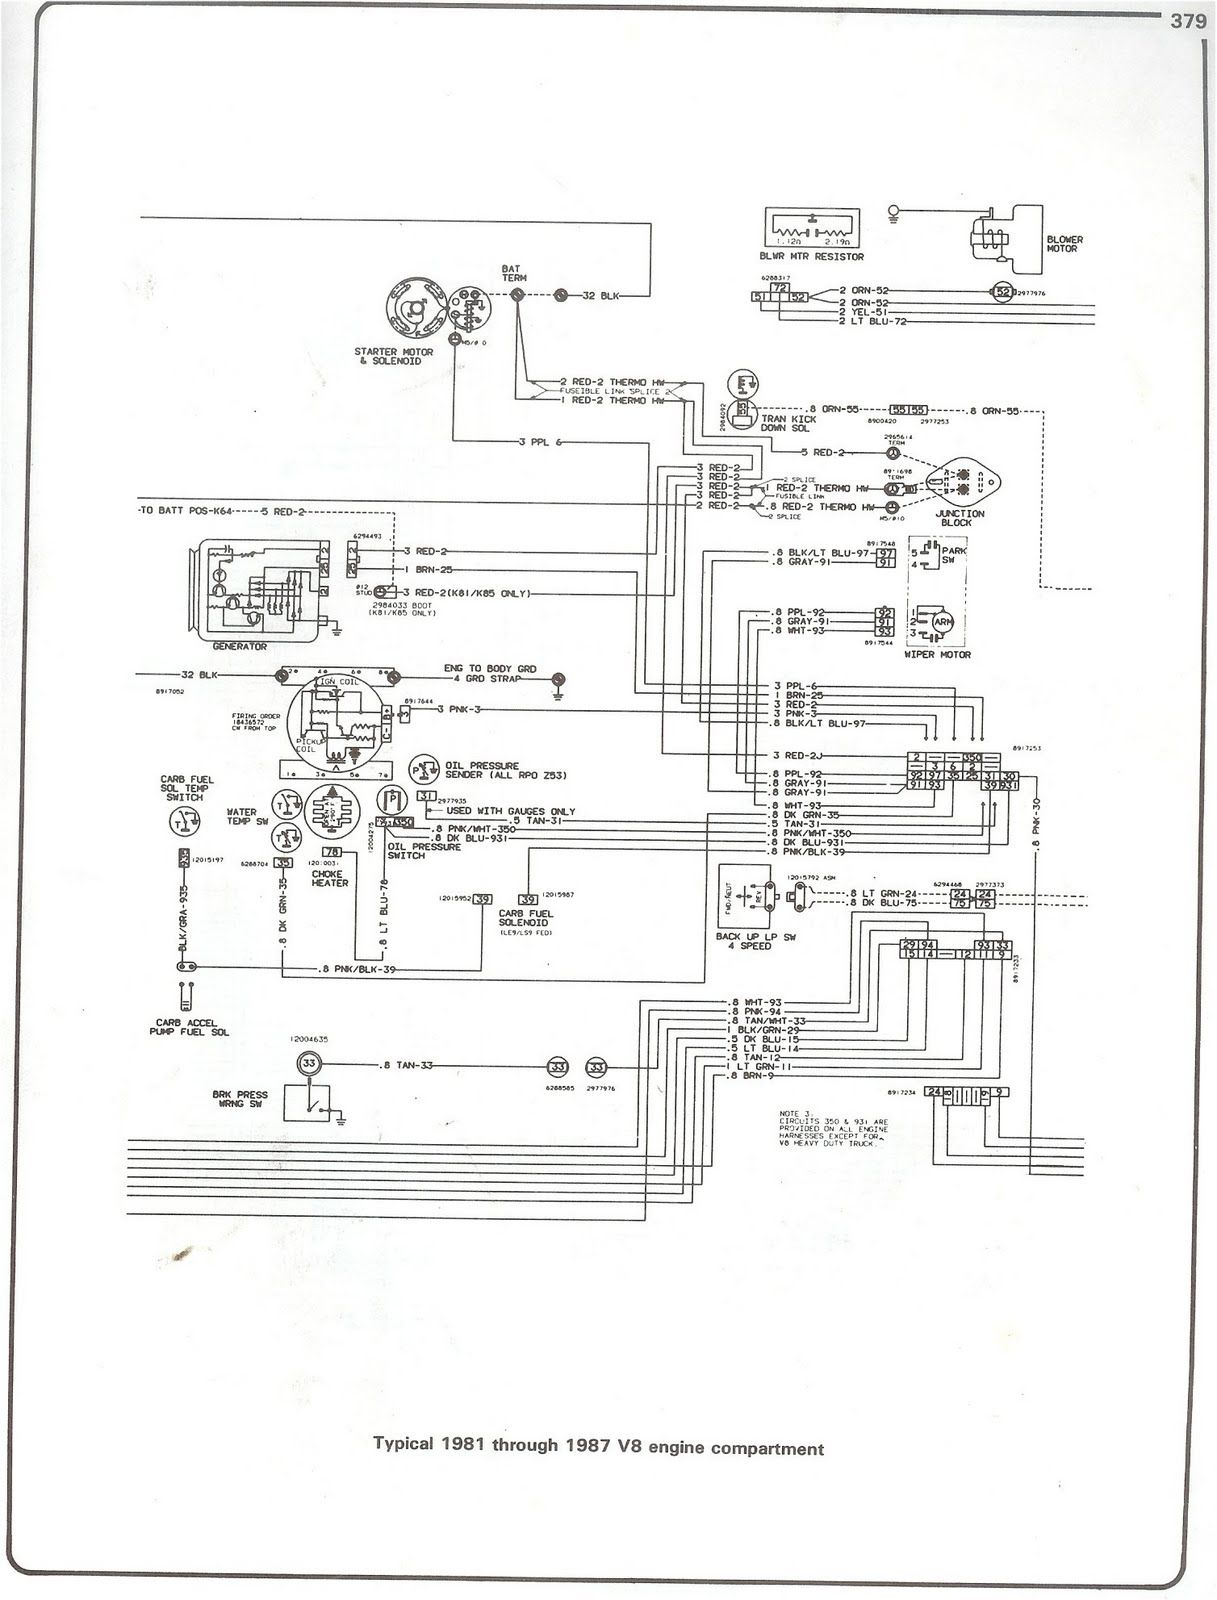 This is engine compartment wiring diagram for 1981 trough